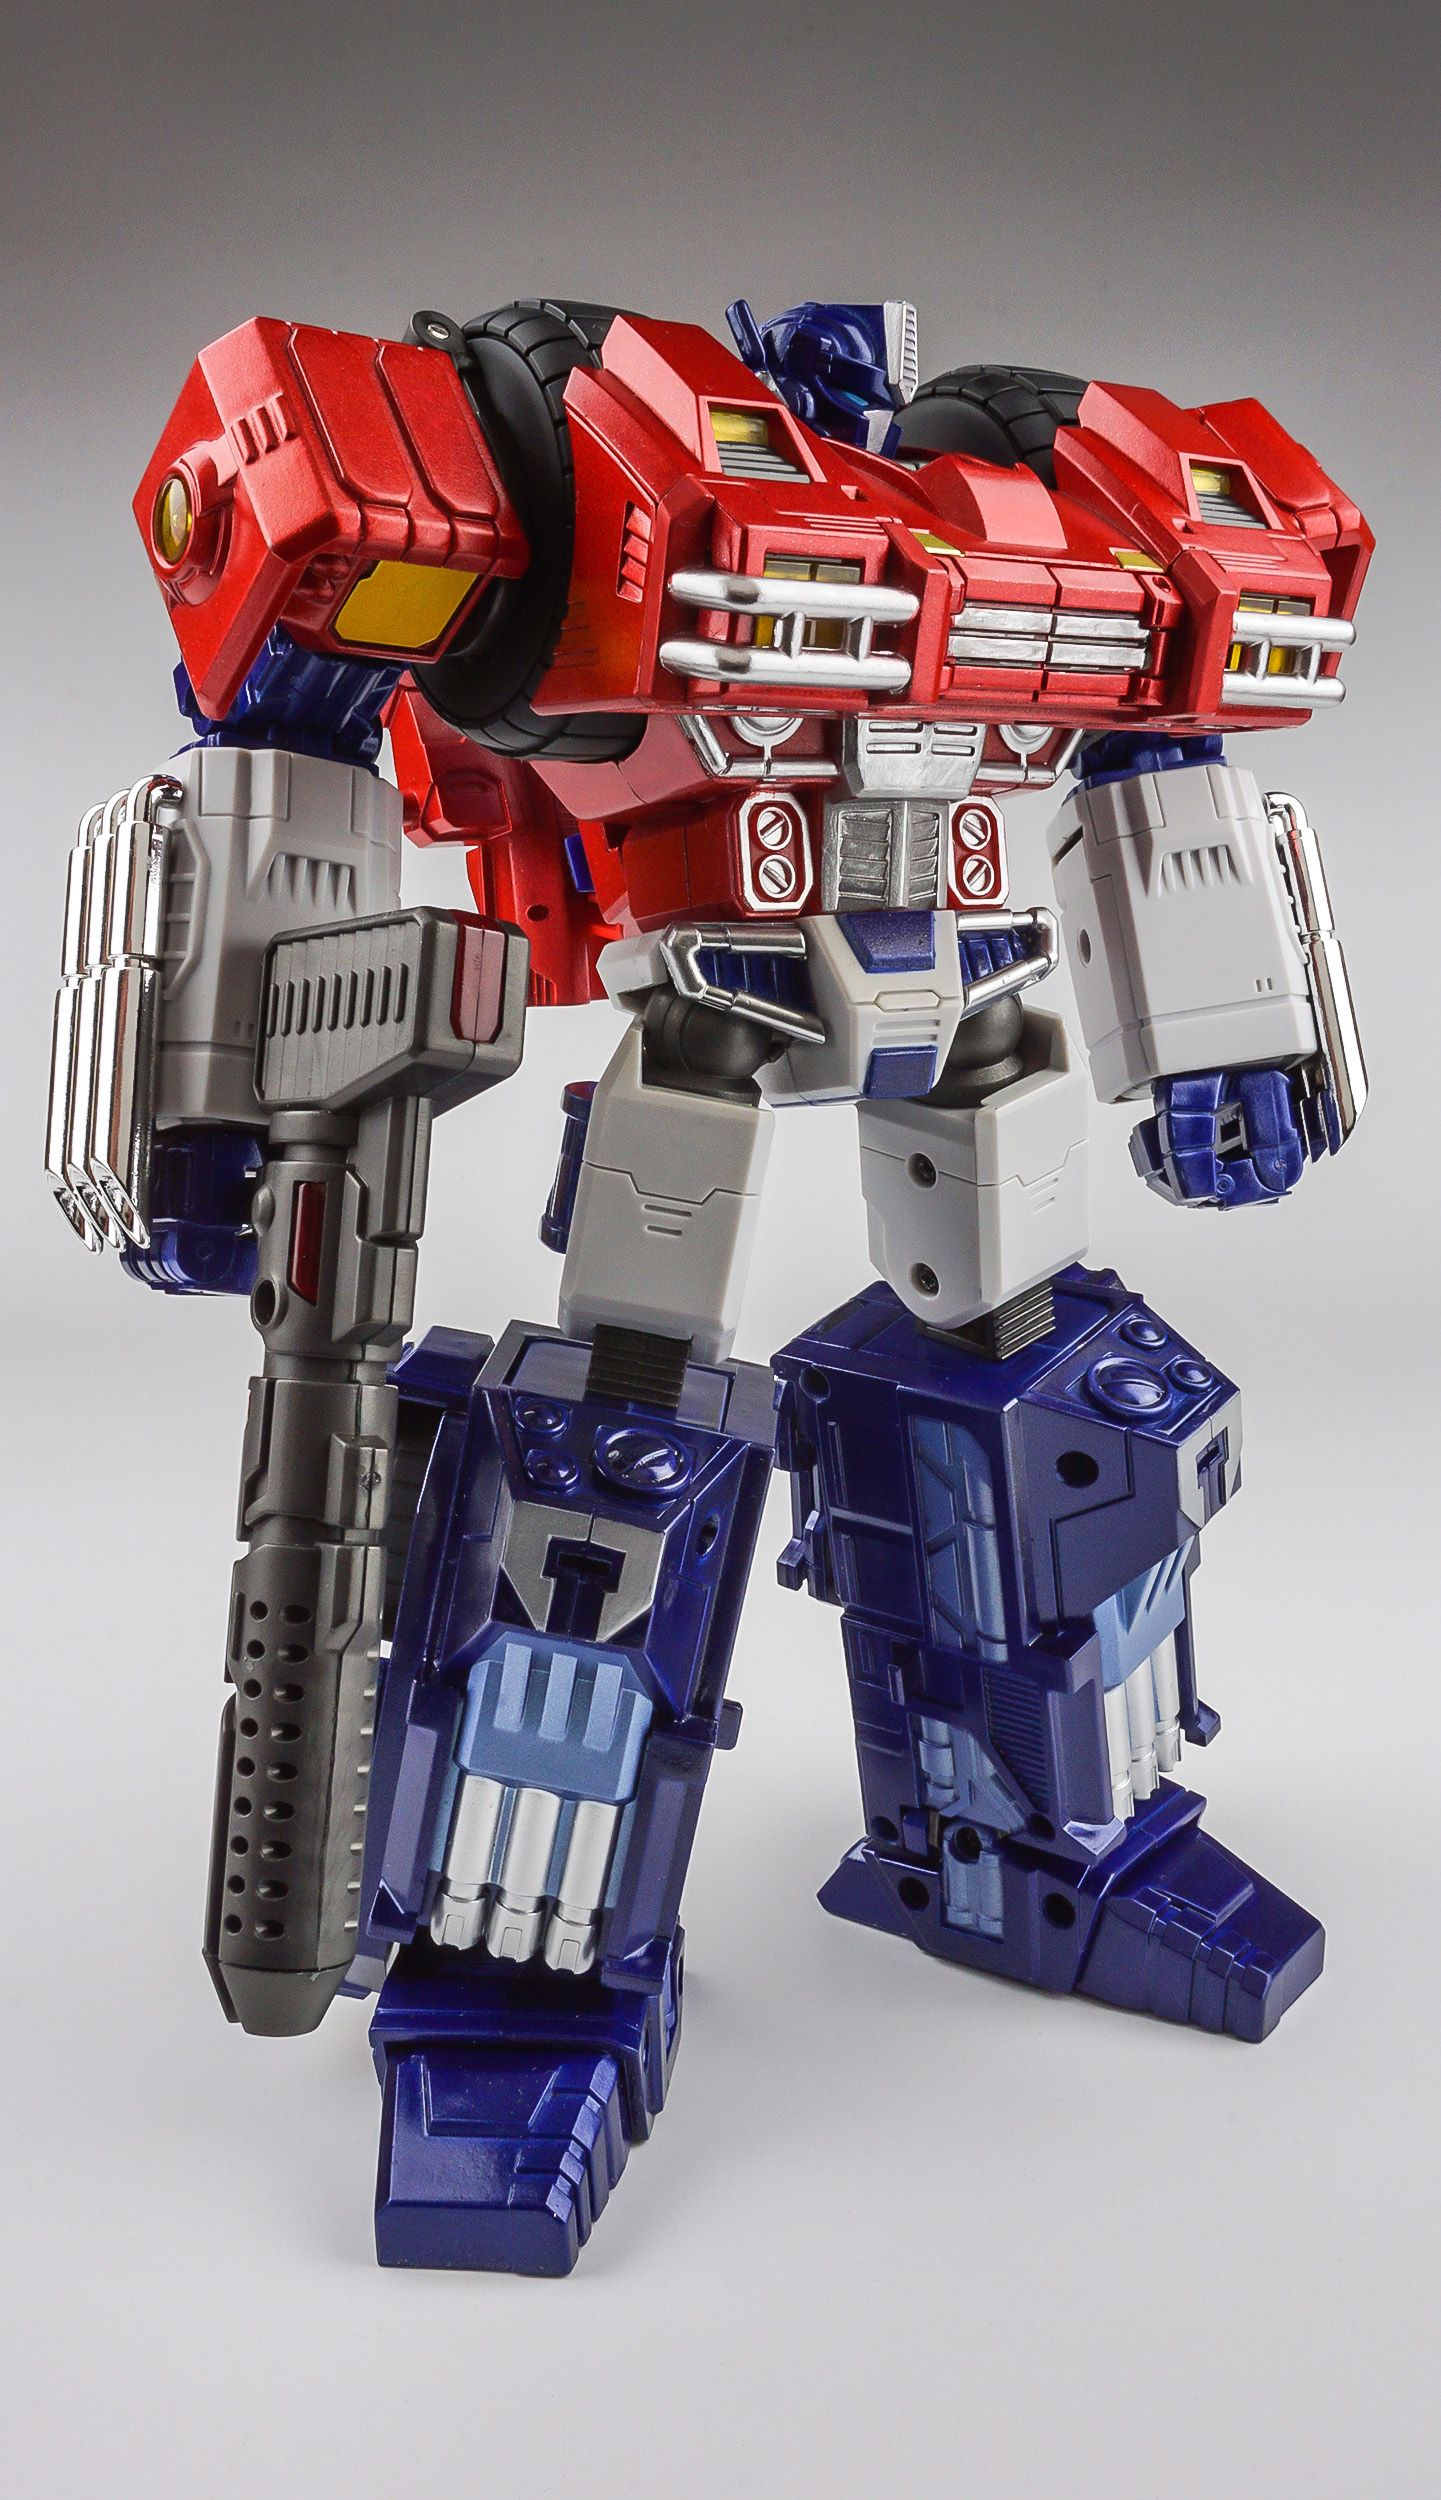 Generation Toy GT-03B Black Optimus Prime O.P EX Transformers Action Figure Toy